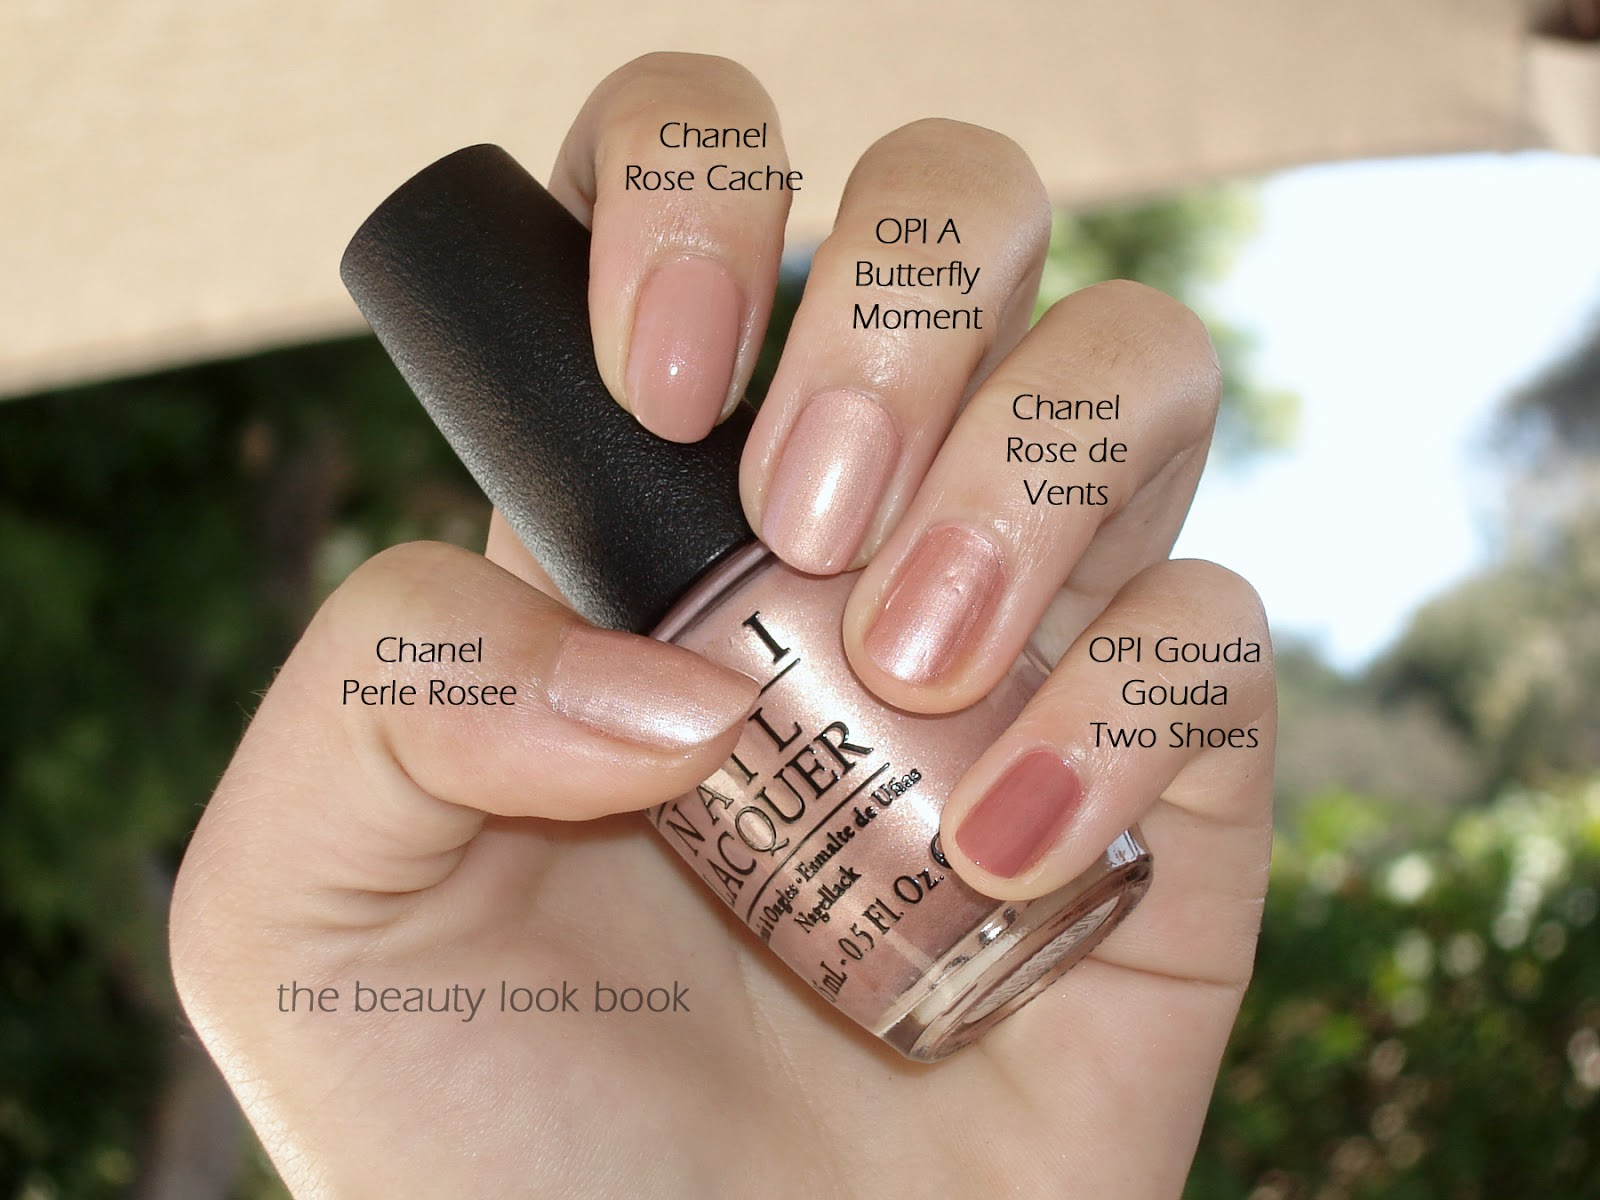 OPI - A Butterfly Moment | The Beauty Look Book